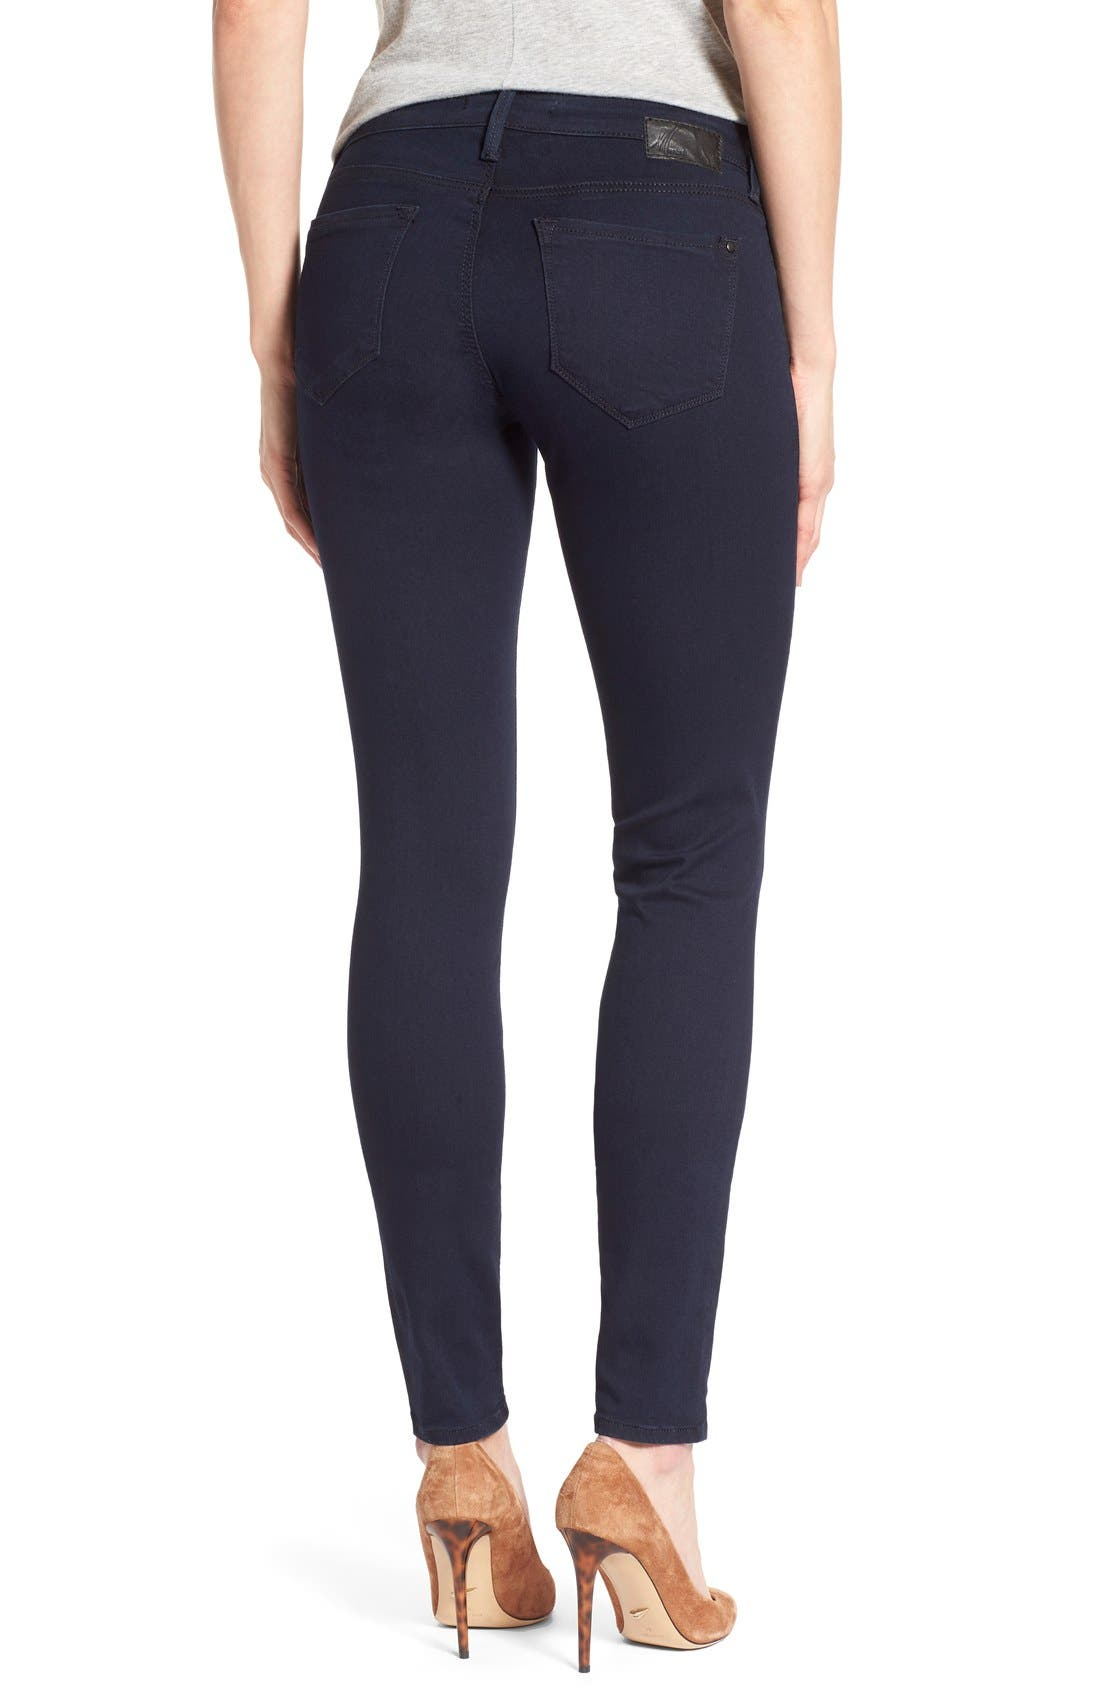 Alternate Image 2  - Mavi Jeans 'Serena' Stretch Skinny Jeans (Dark Shanti) (Regular & Petite)